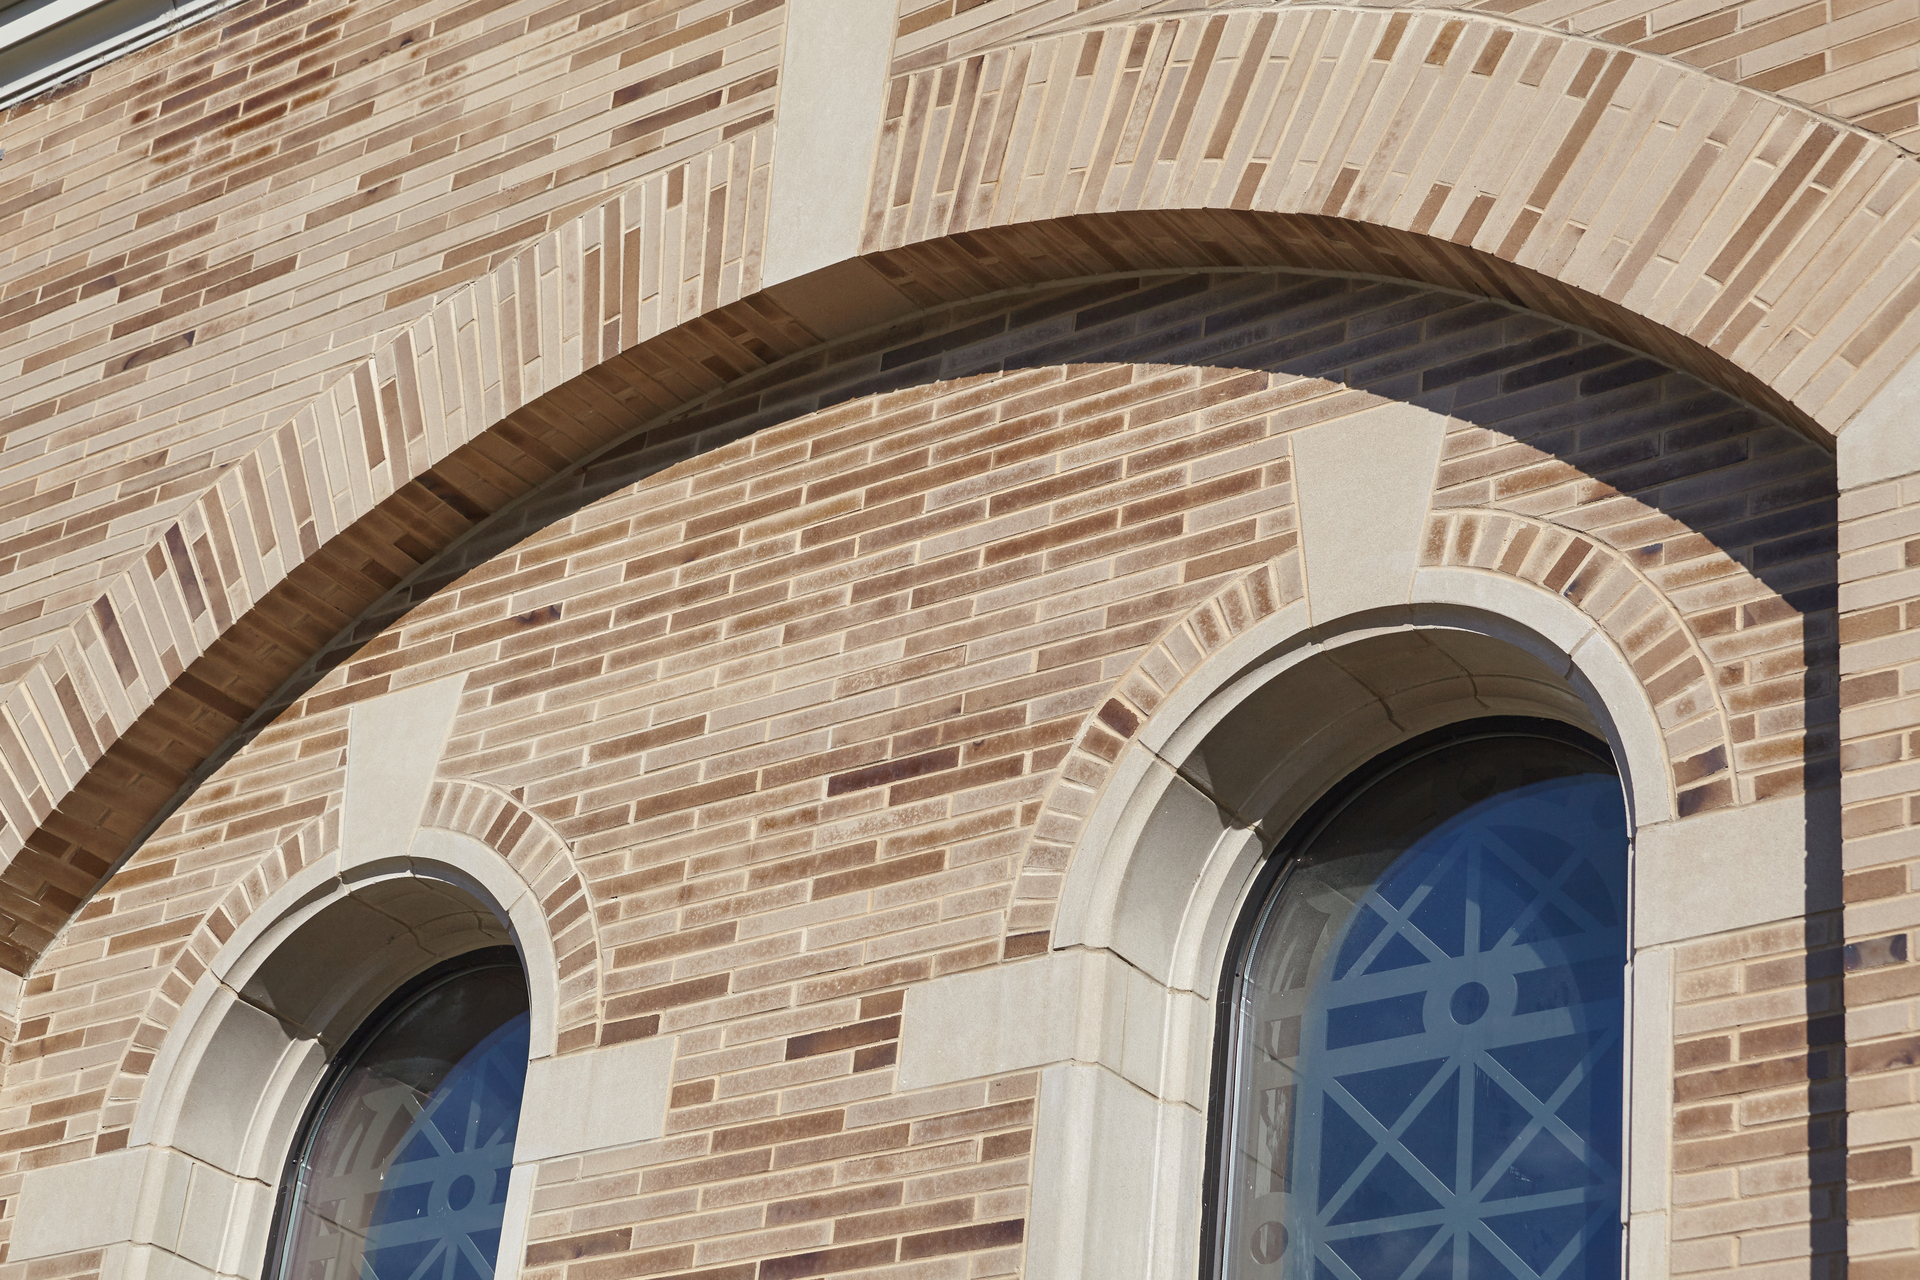 A close-up exterior view of the cathedral shows the detail of the window sculptures and smooth multi-colored bricks.  Photo by Kaminski Studios.